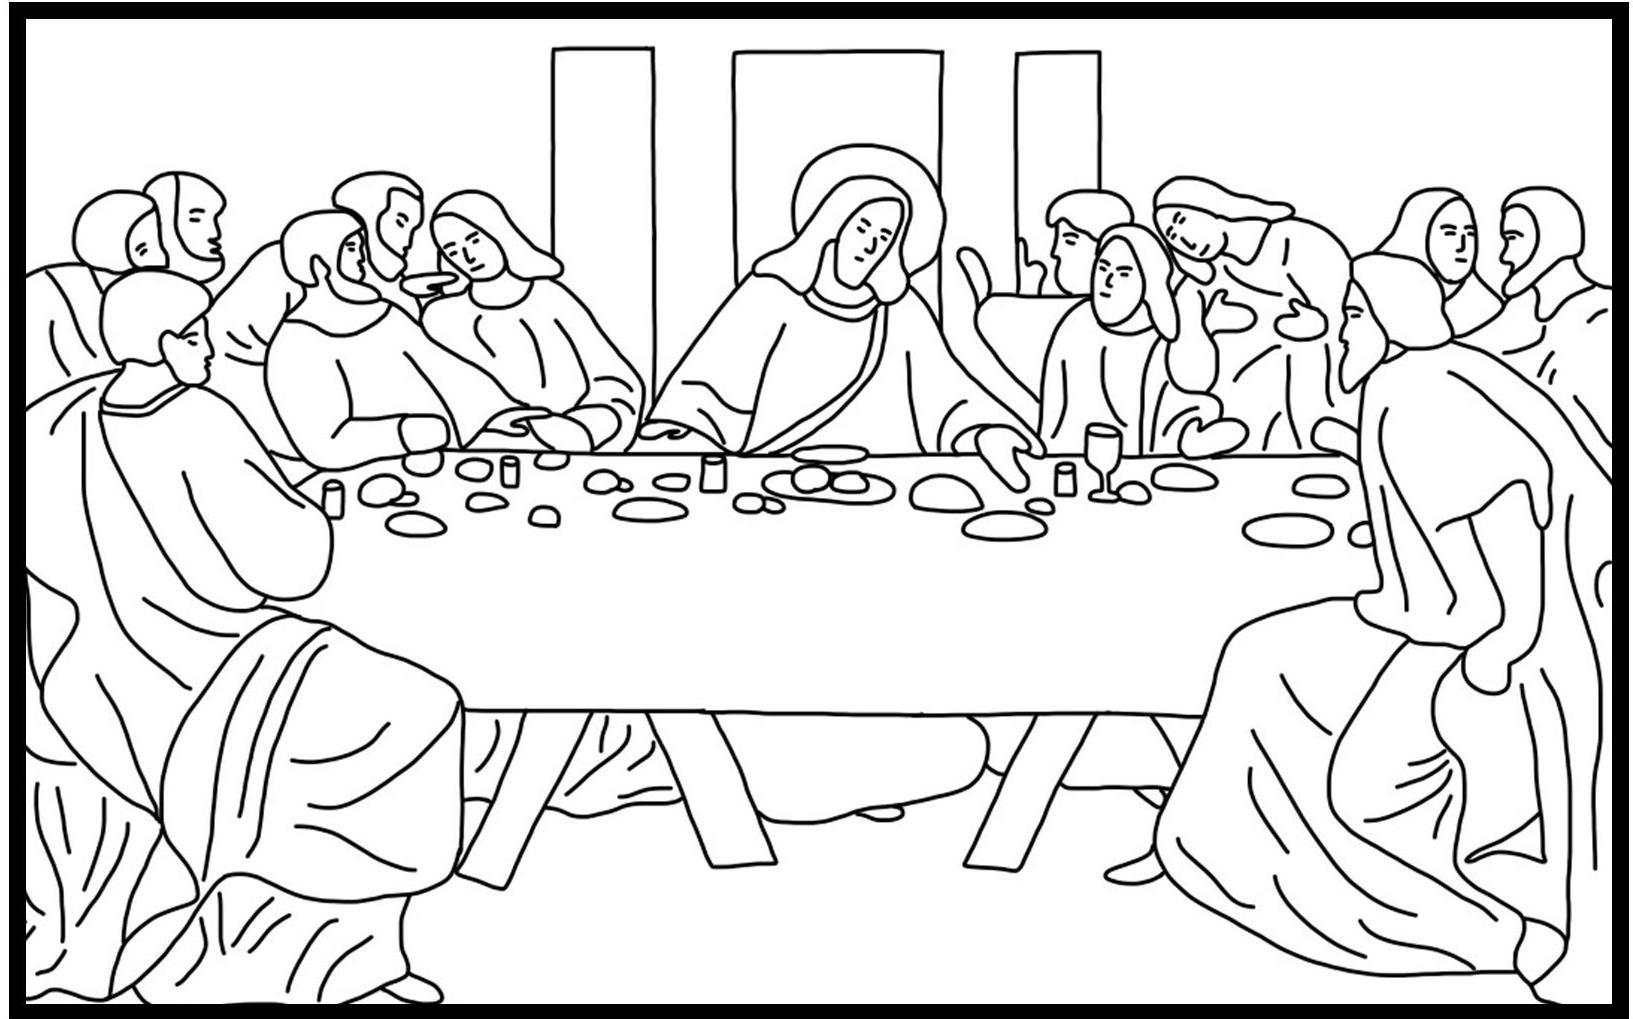 Printable coloring pages last supper - Free Printable Last Supper Coloring Pages Desi 1008